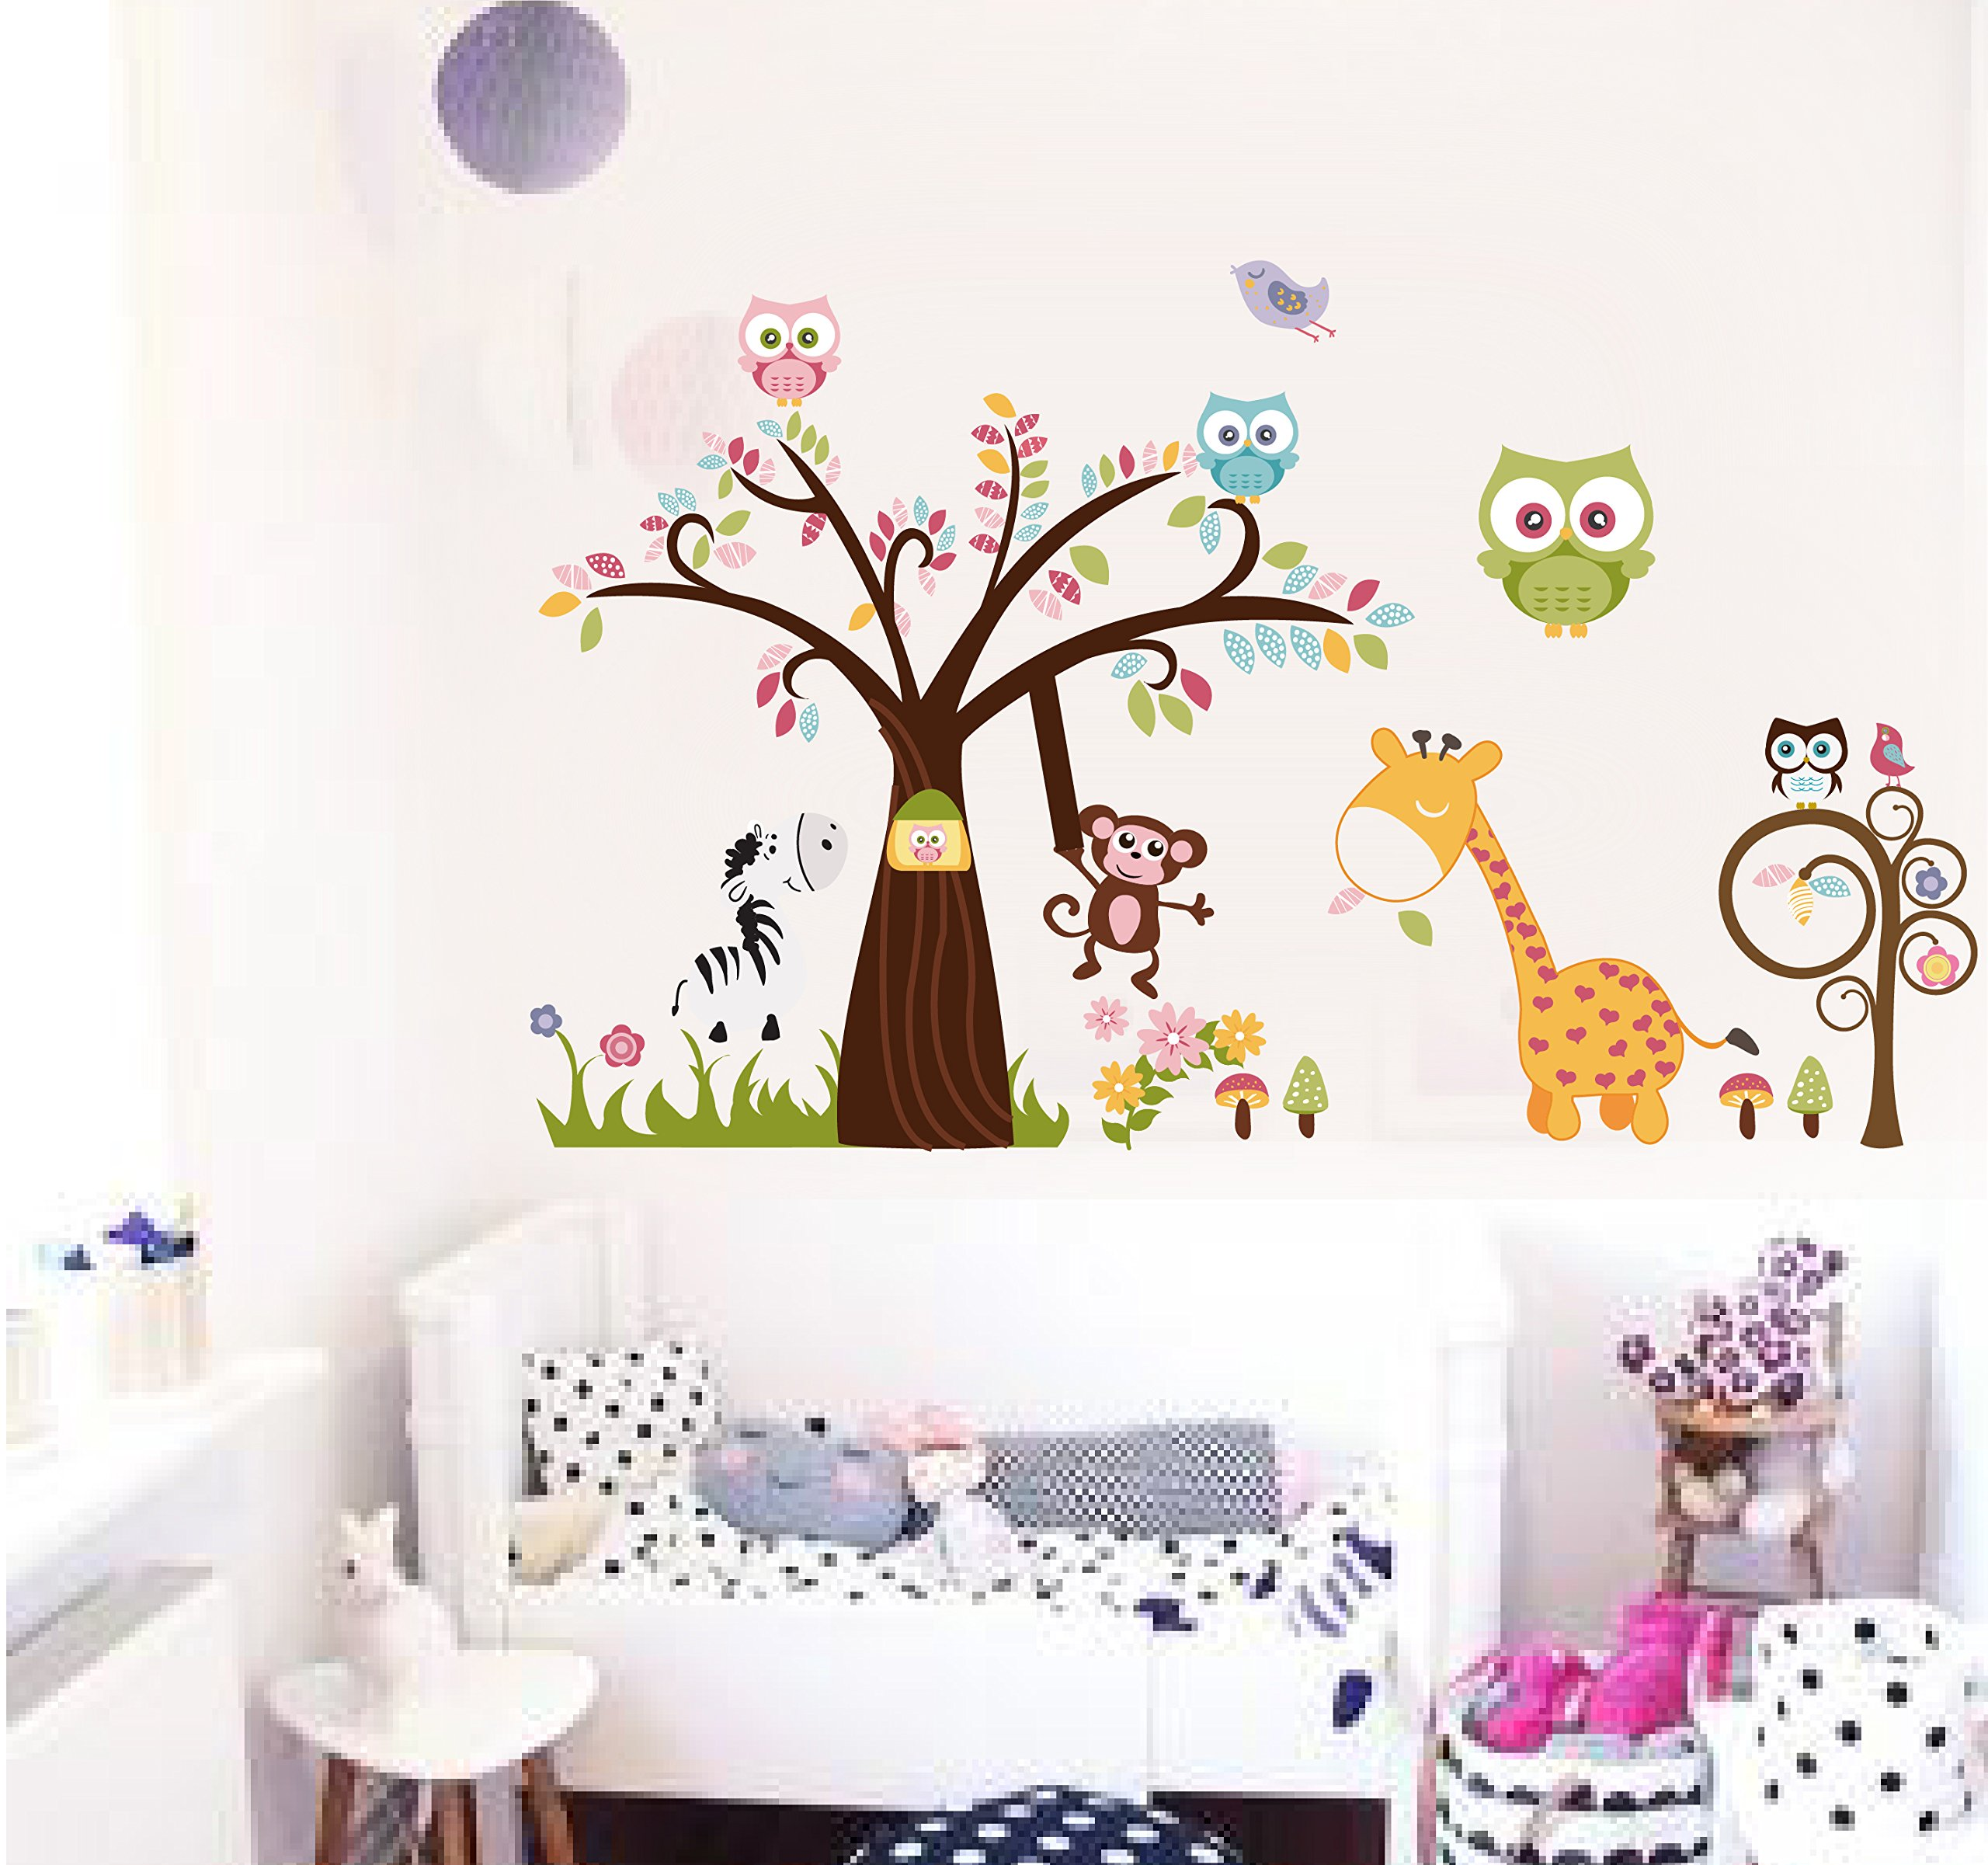 Jessie&letty Jungle Zoo Animal Tree Giraffe Monkey Owl Wall Stickers Decal for Kids Room Nursery Decoration